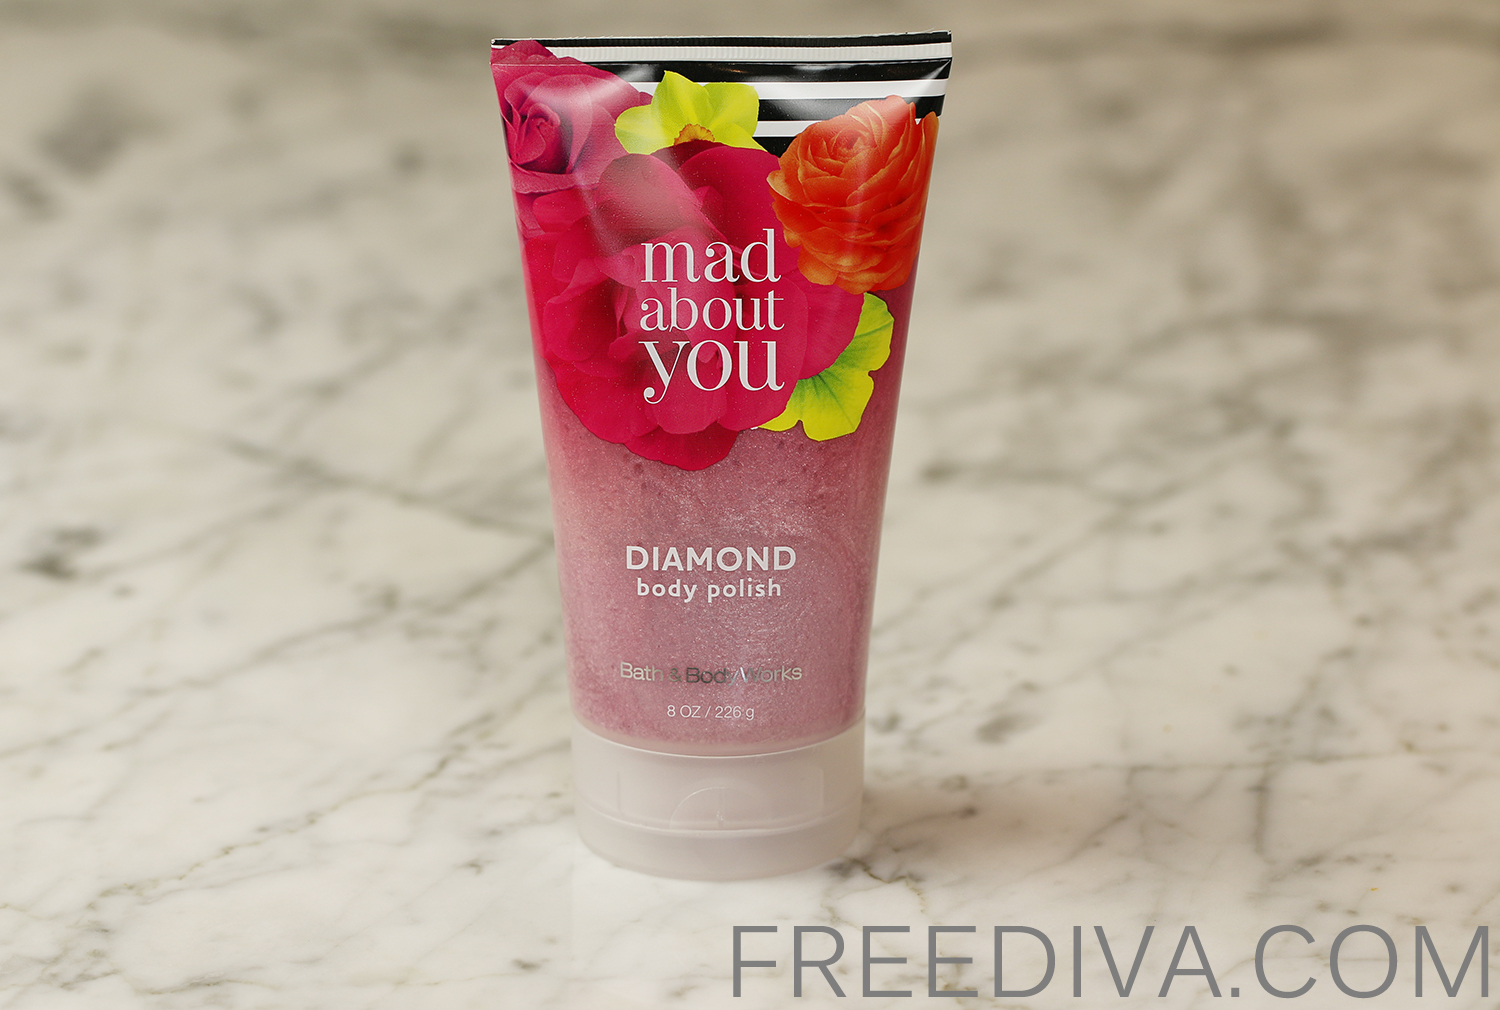 Mad About You Diamond Body Polish Scrub Bath & Body Works